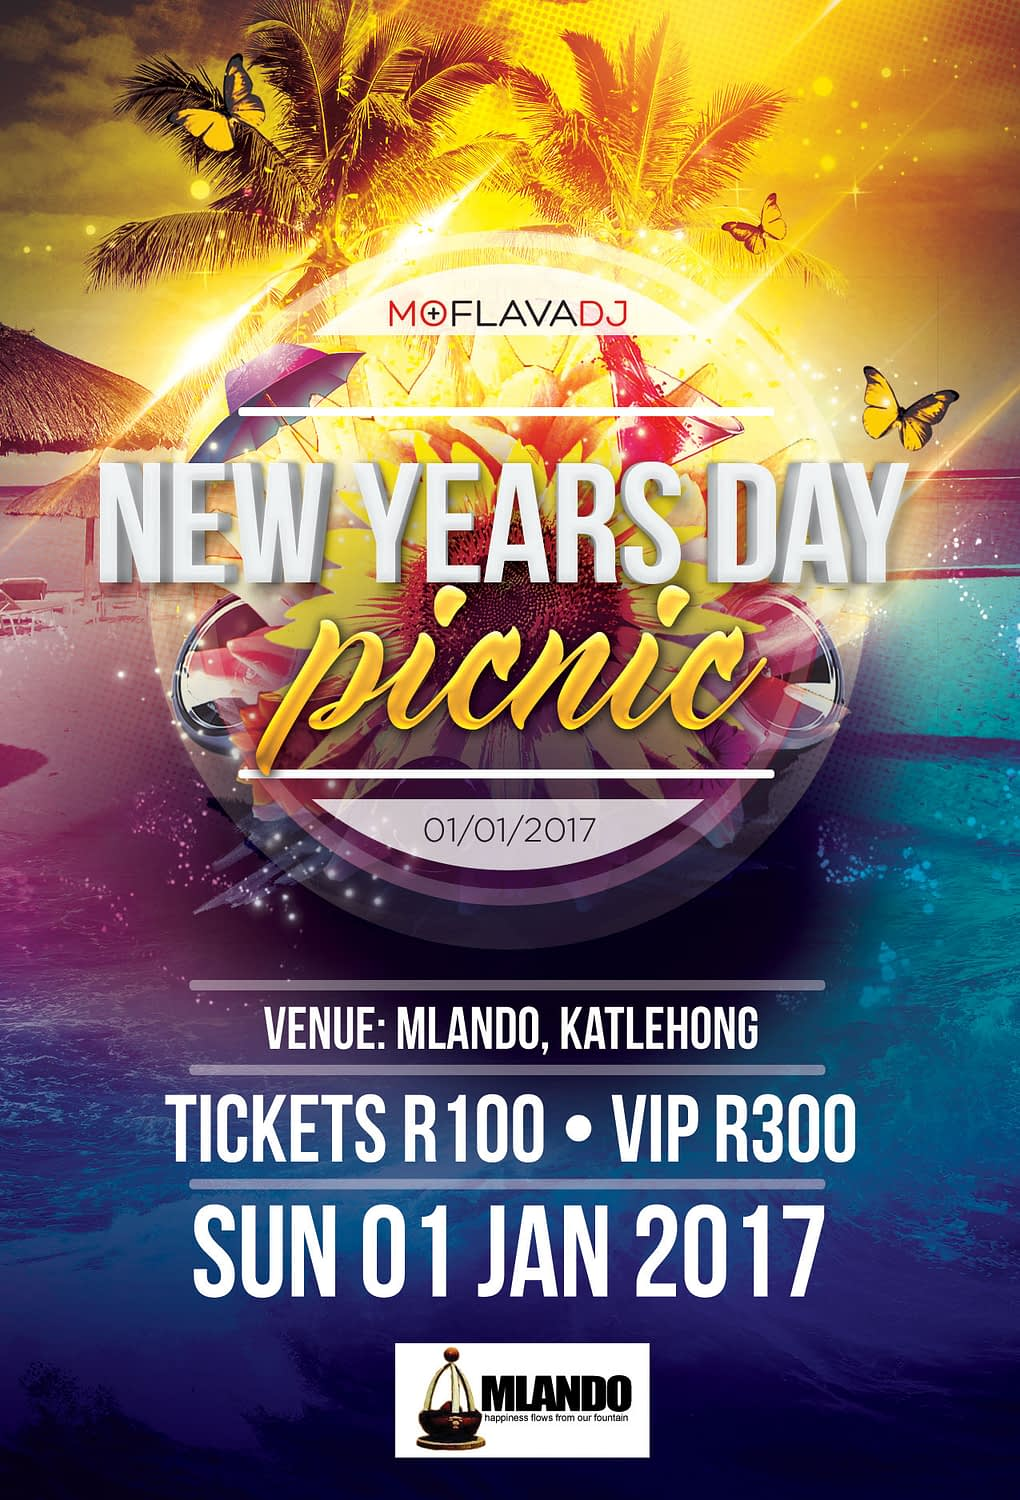 New Years Day Picnic '17 GENERIC FLYER | KEMOSO